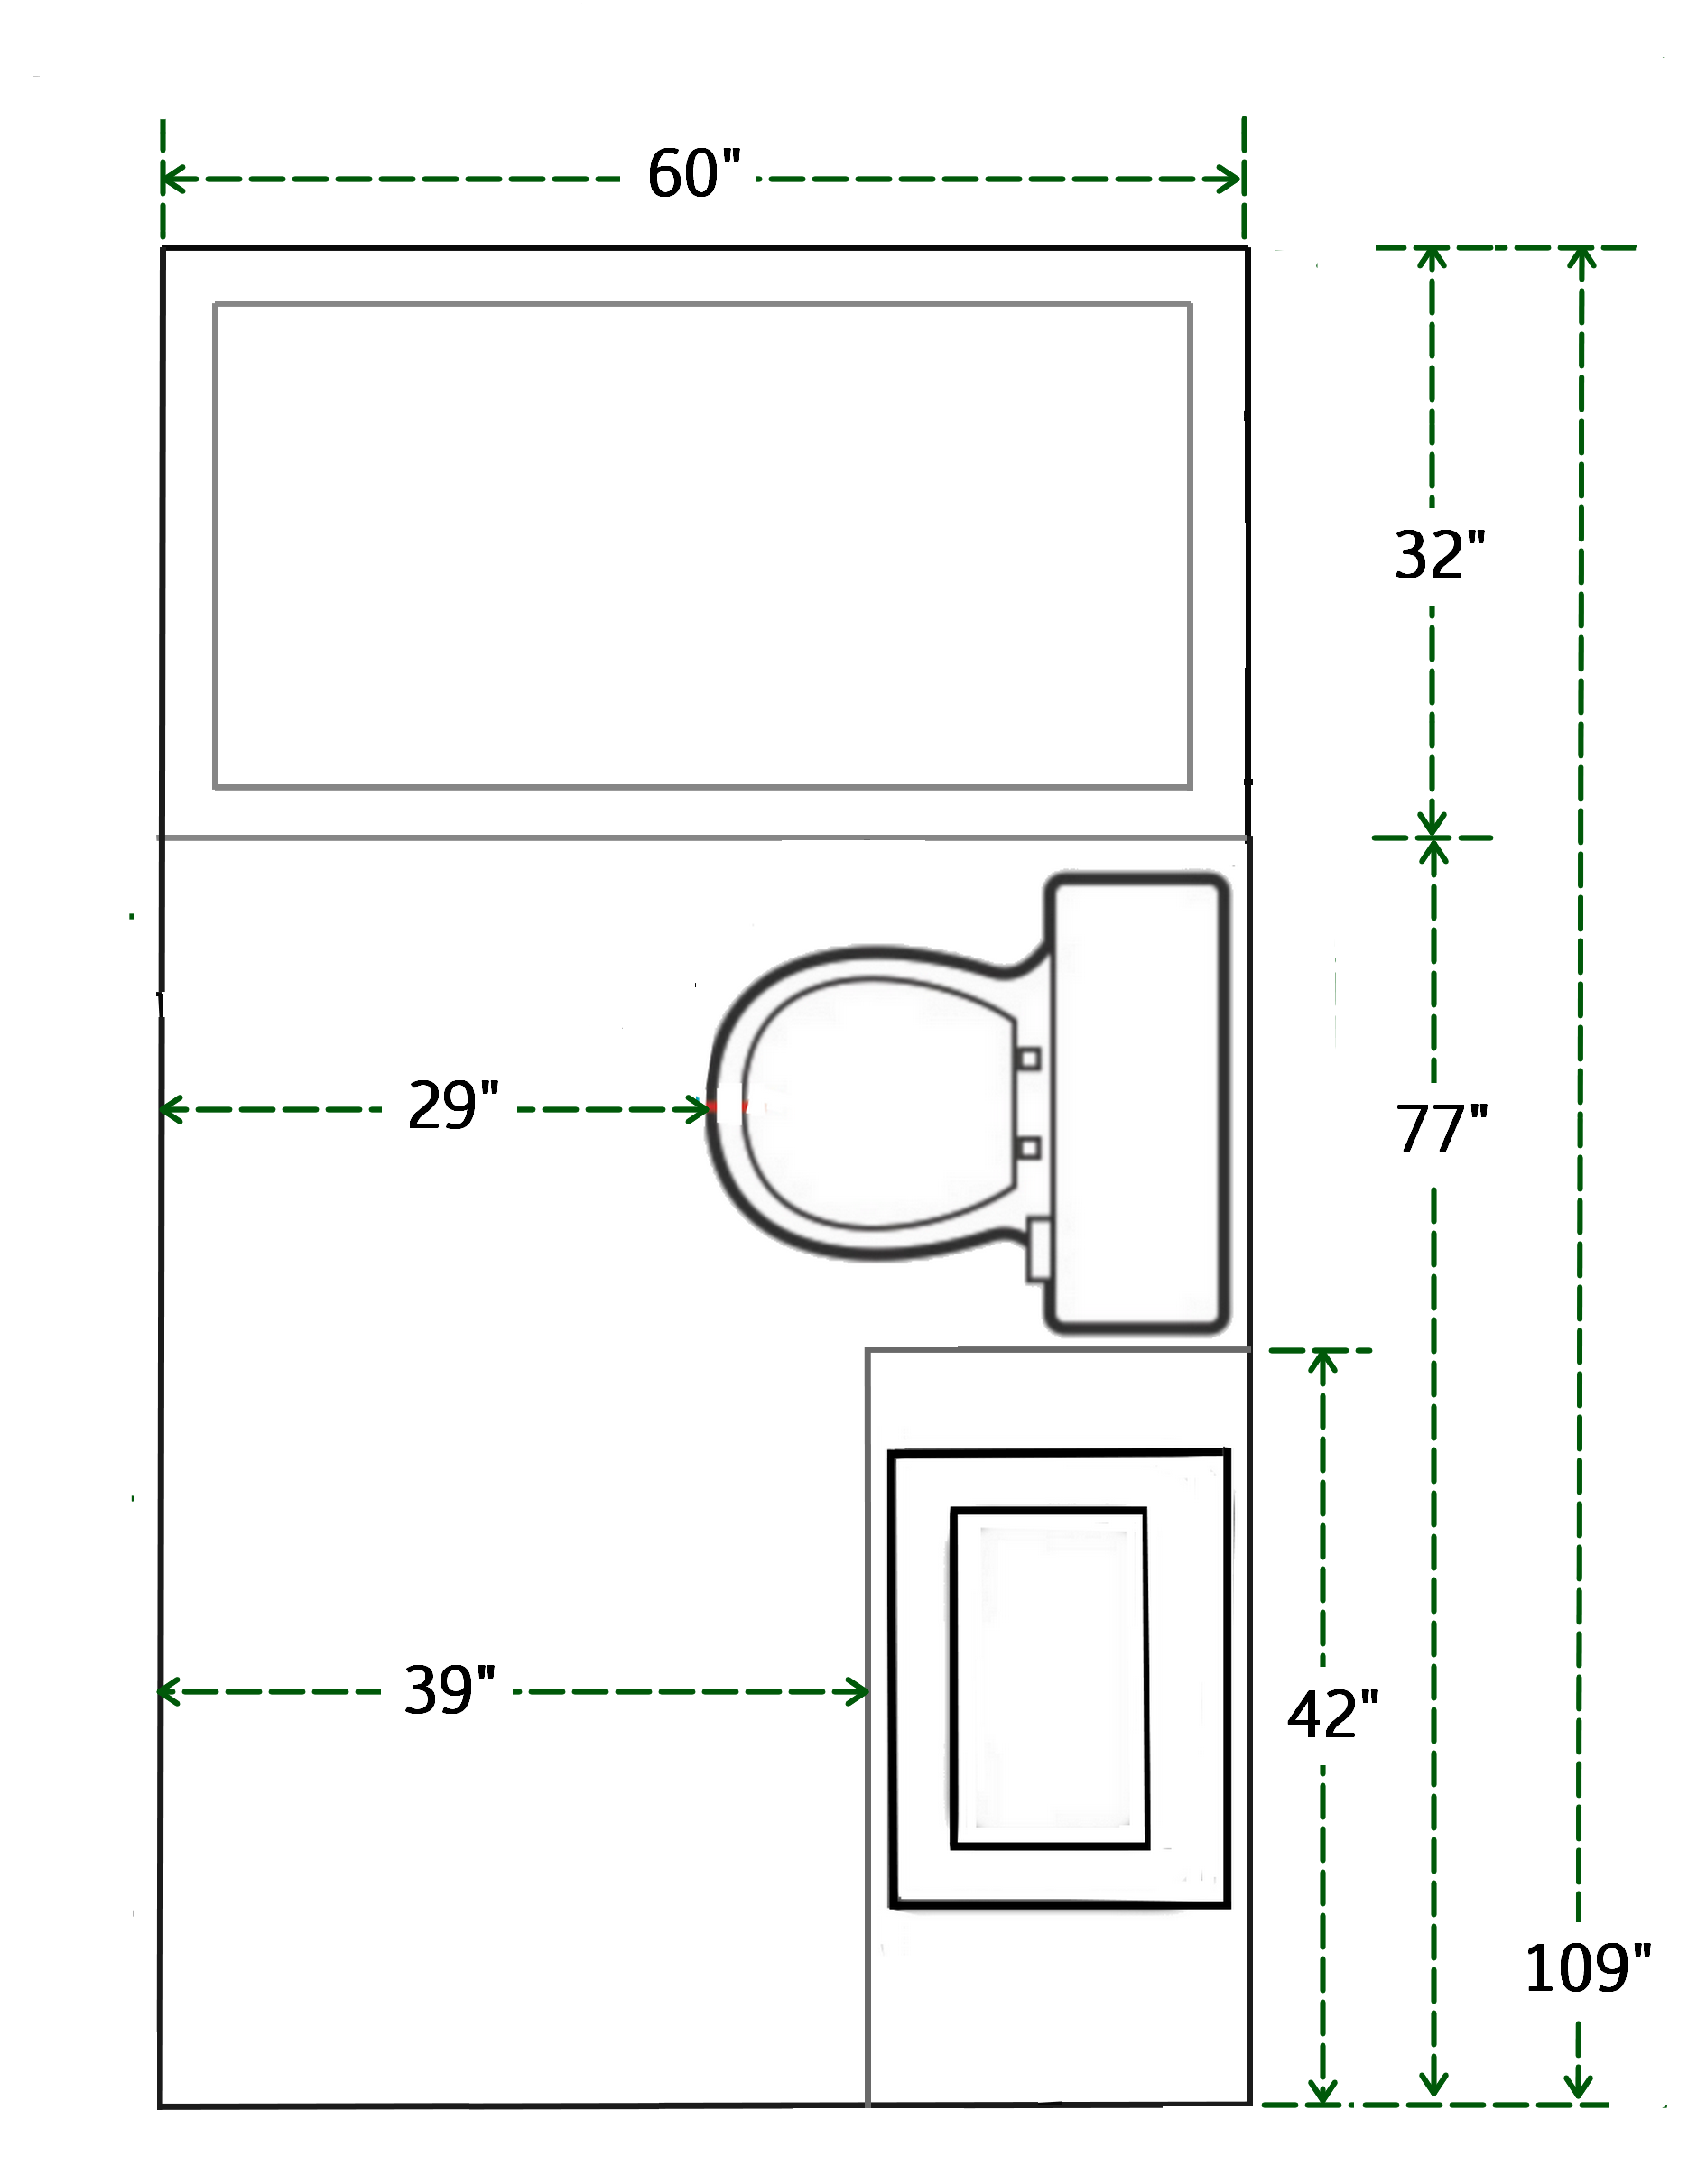 Floor Plan And Measurements Of Small Bathroom Add A Shower